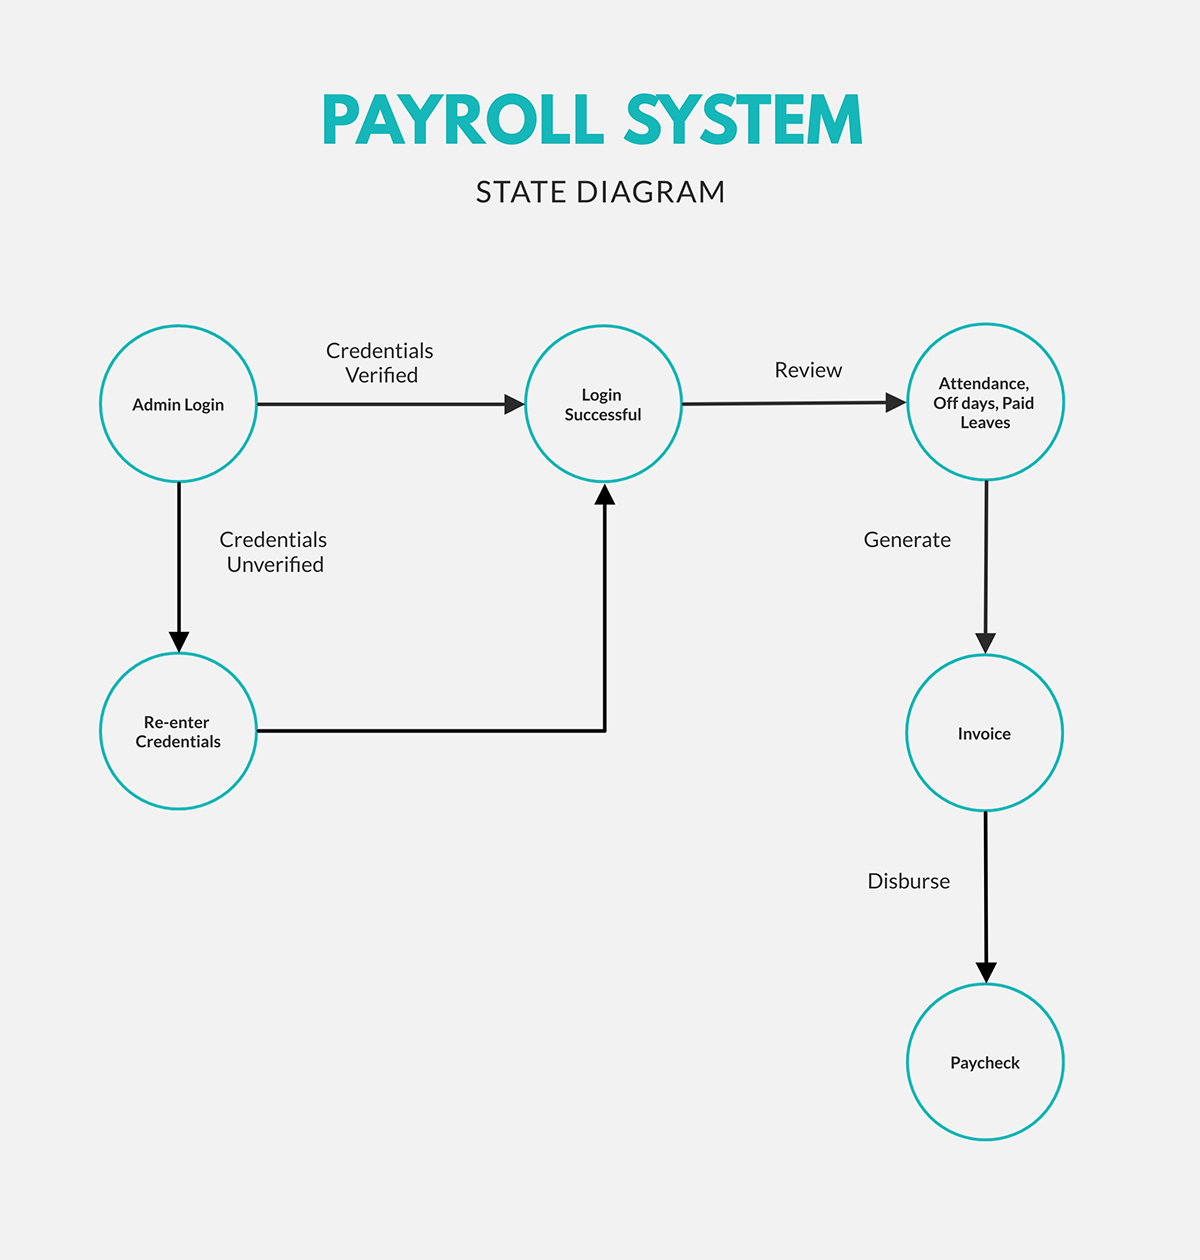 A payroll system state diagram template available in Visme.